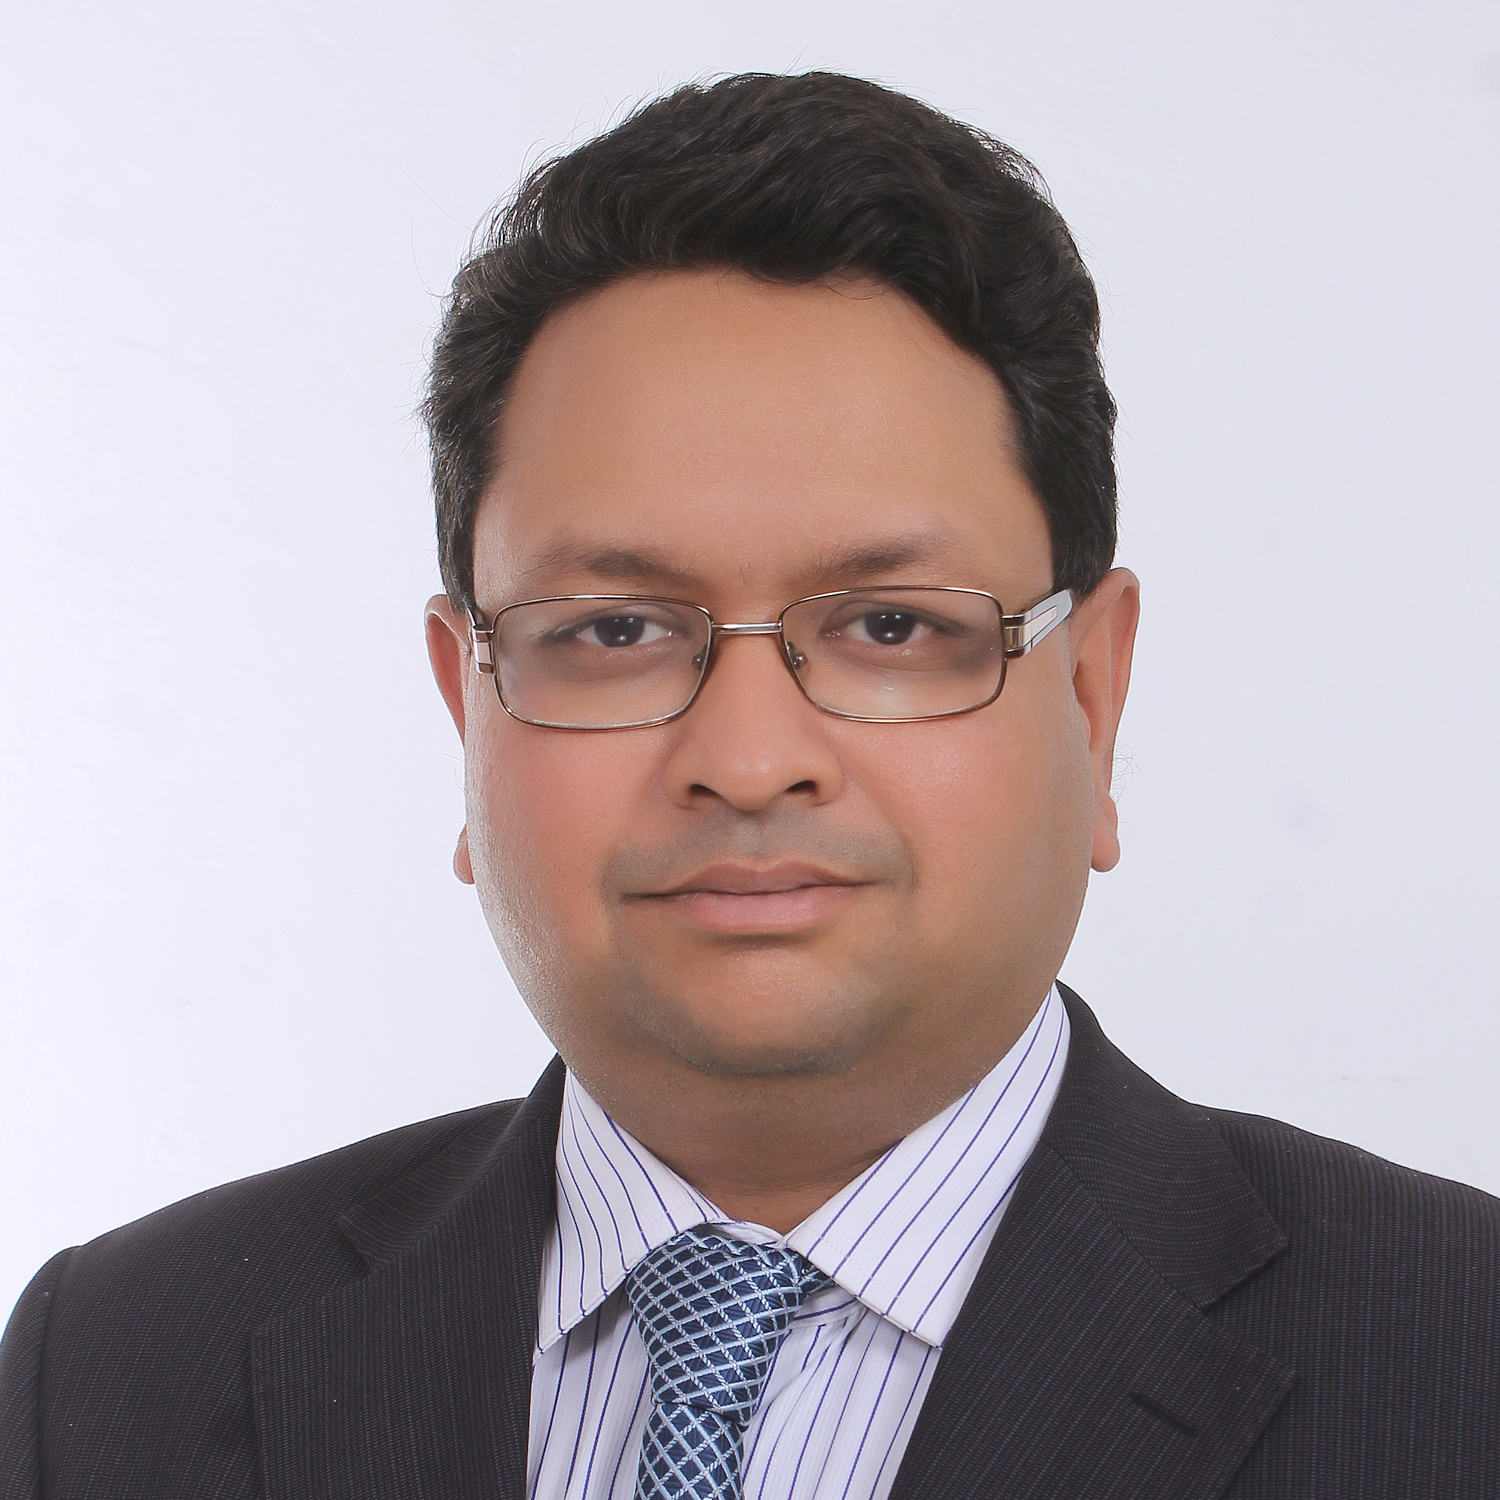 Rahul Garg, Director - Connected Services at Carrier